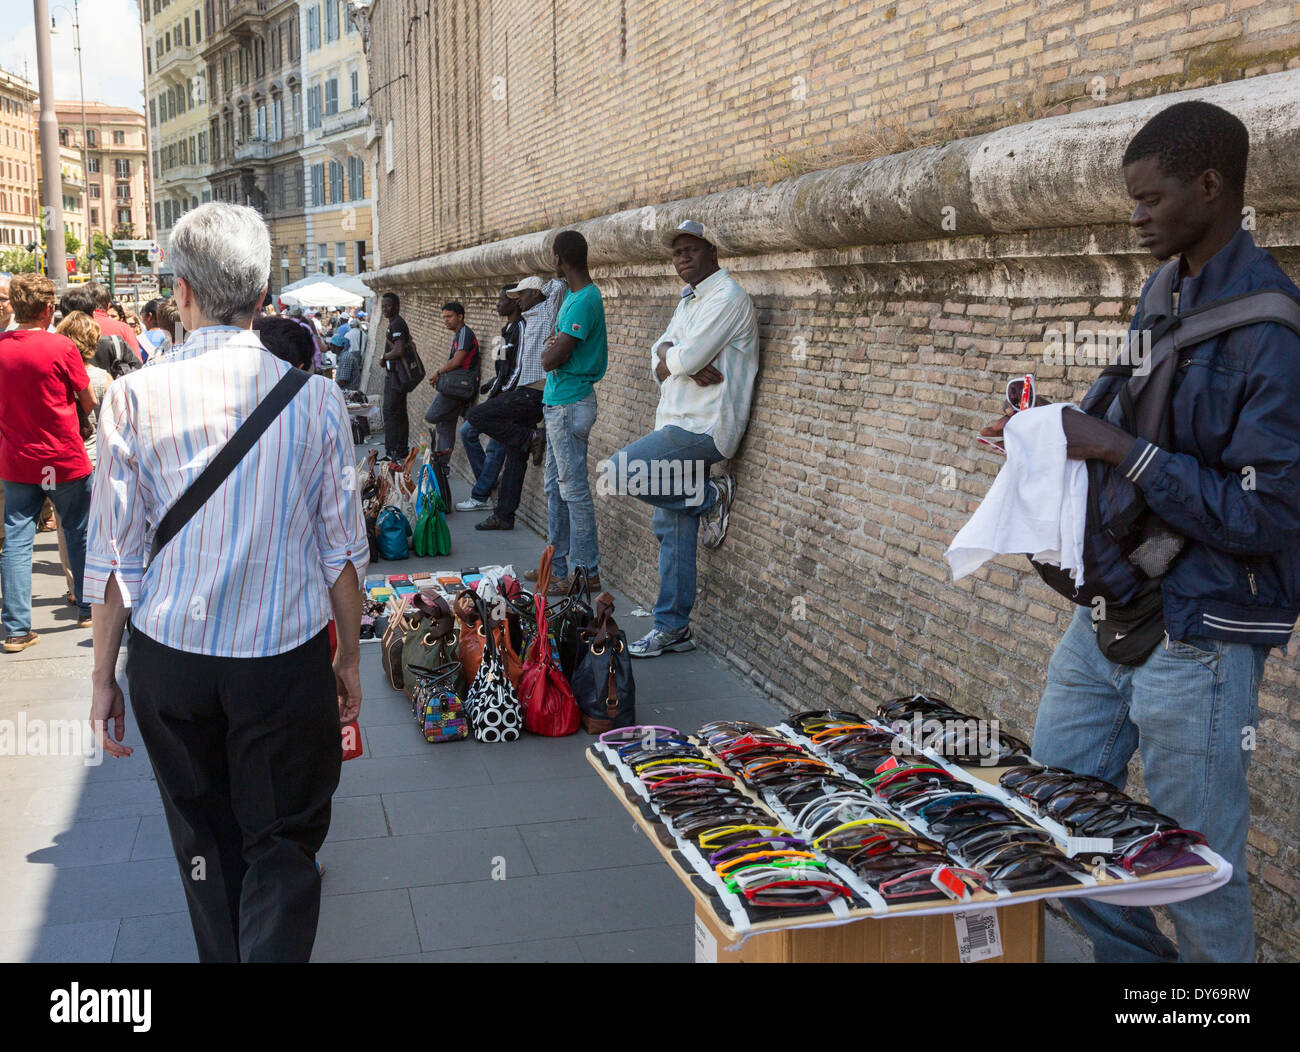 African street sellers, Rome, Italy - Stock Photo